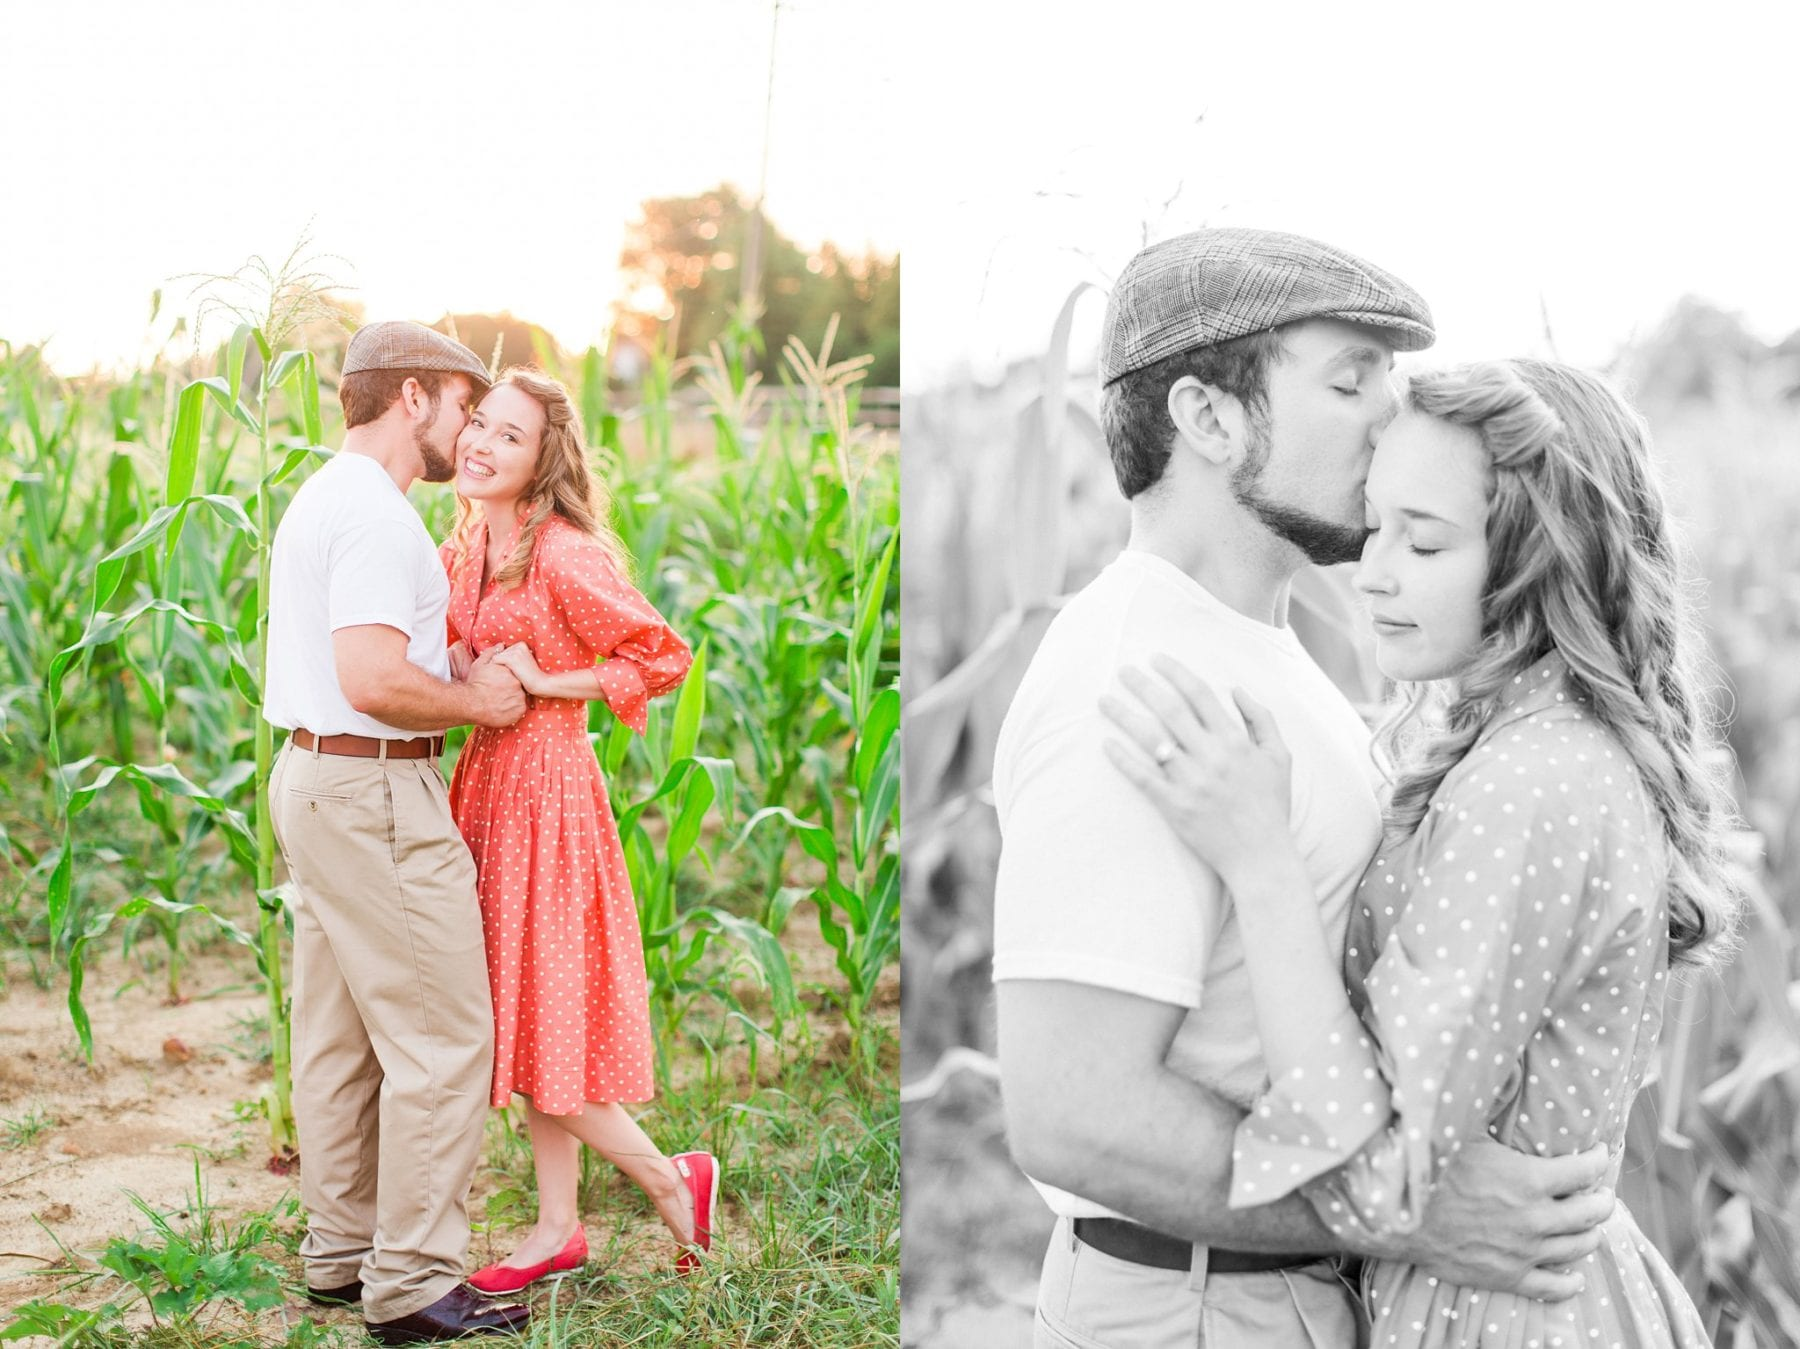 County Fair Engagement Photos Virginia Wedding Photographer Megan Kelsey Photography Samantha & Charles-14.JPG